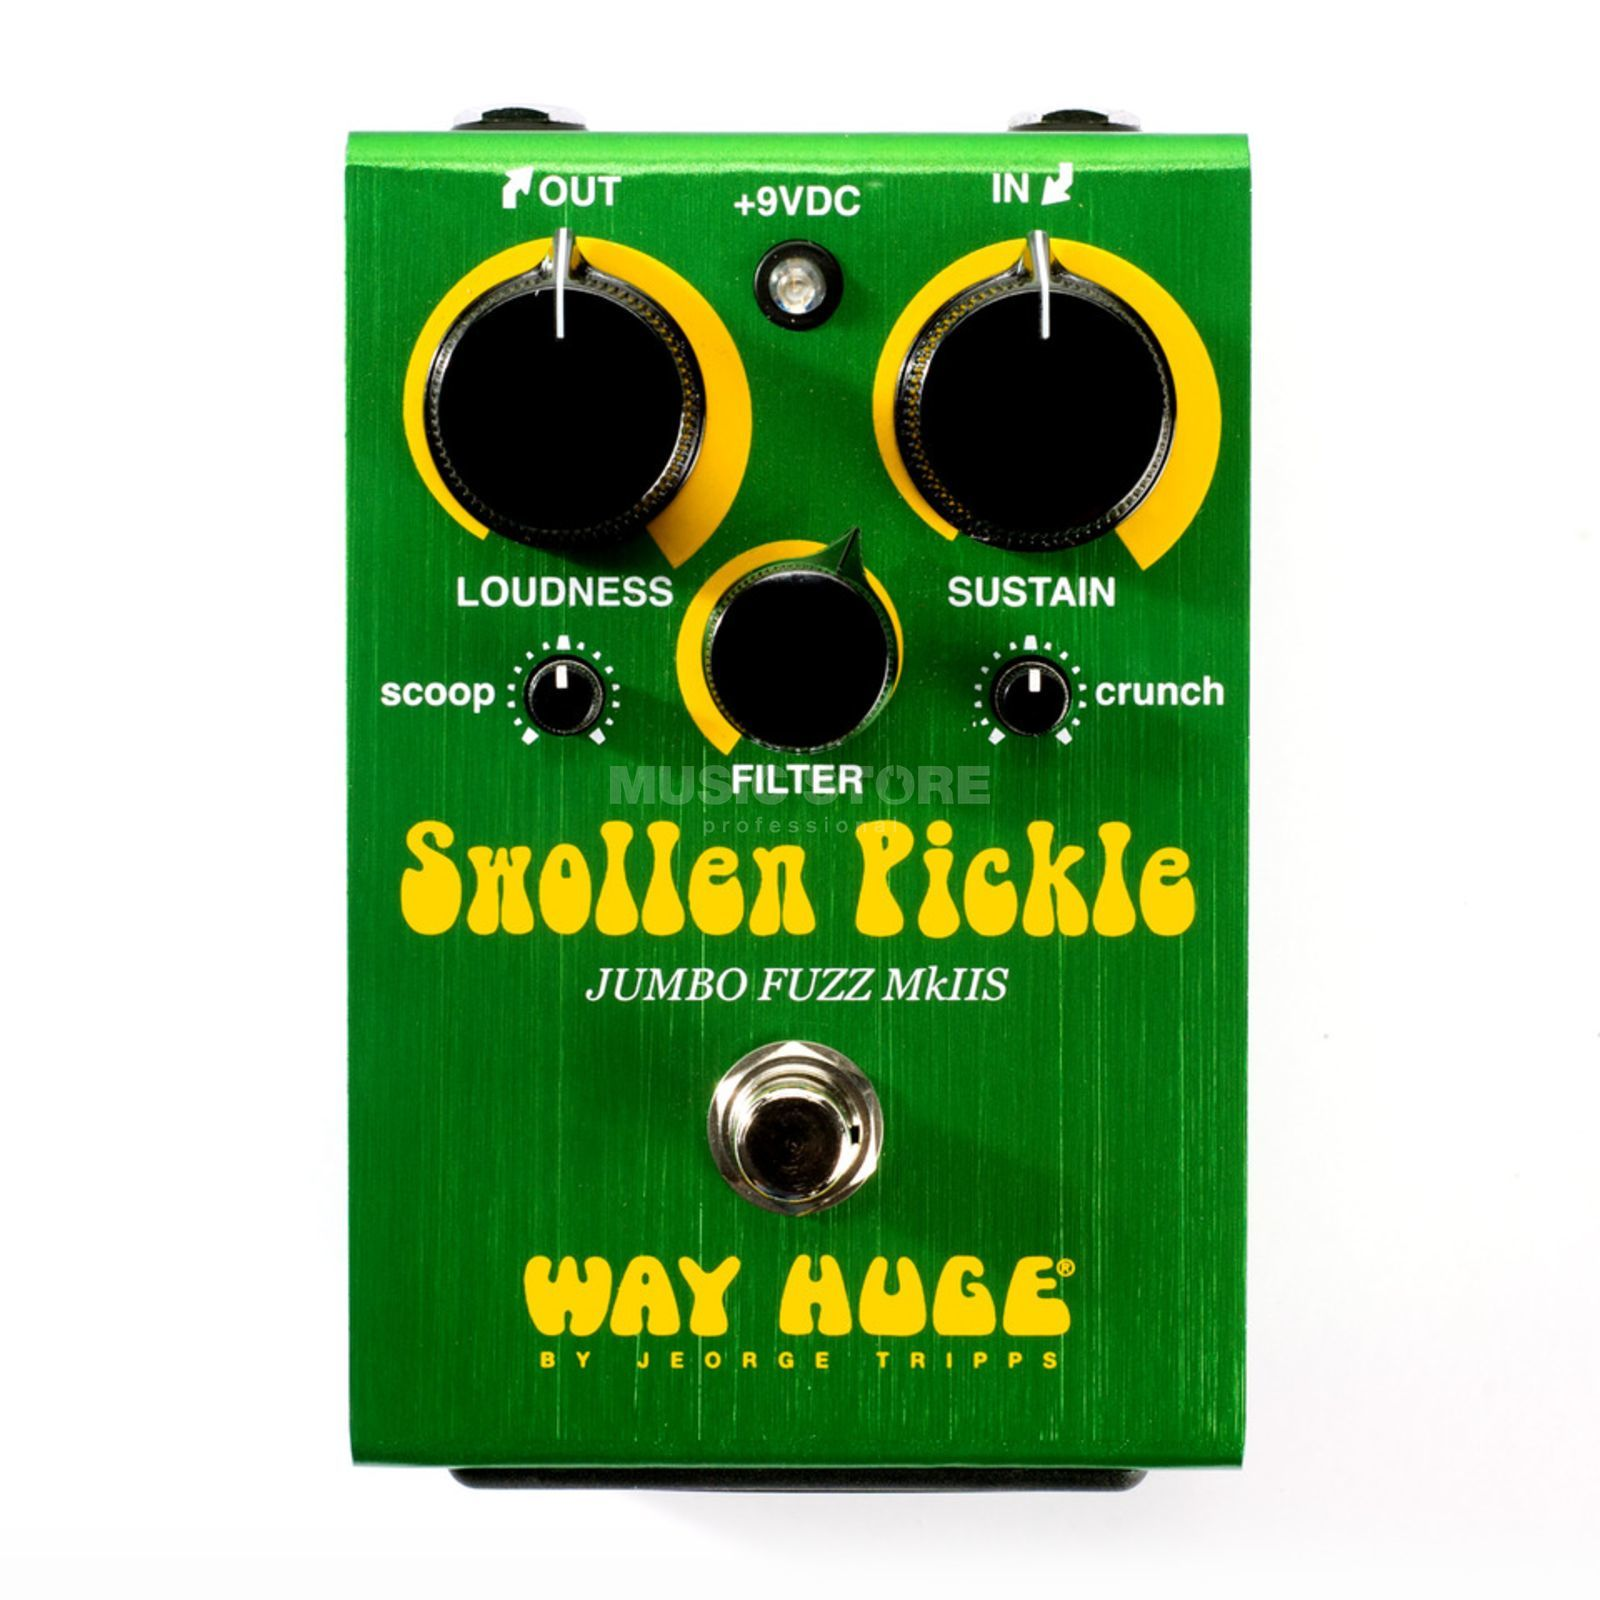 Way Huge Swollen Pickle Jumbo Fuzz MK IIS Produktbillede